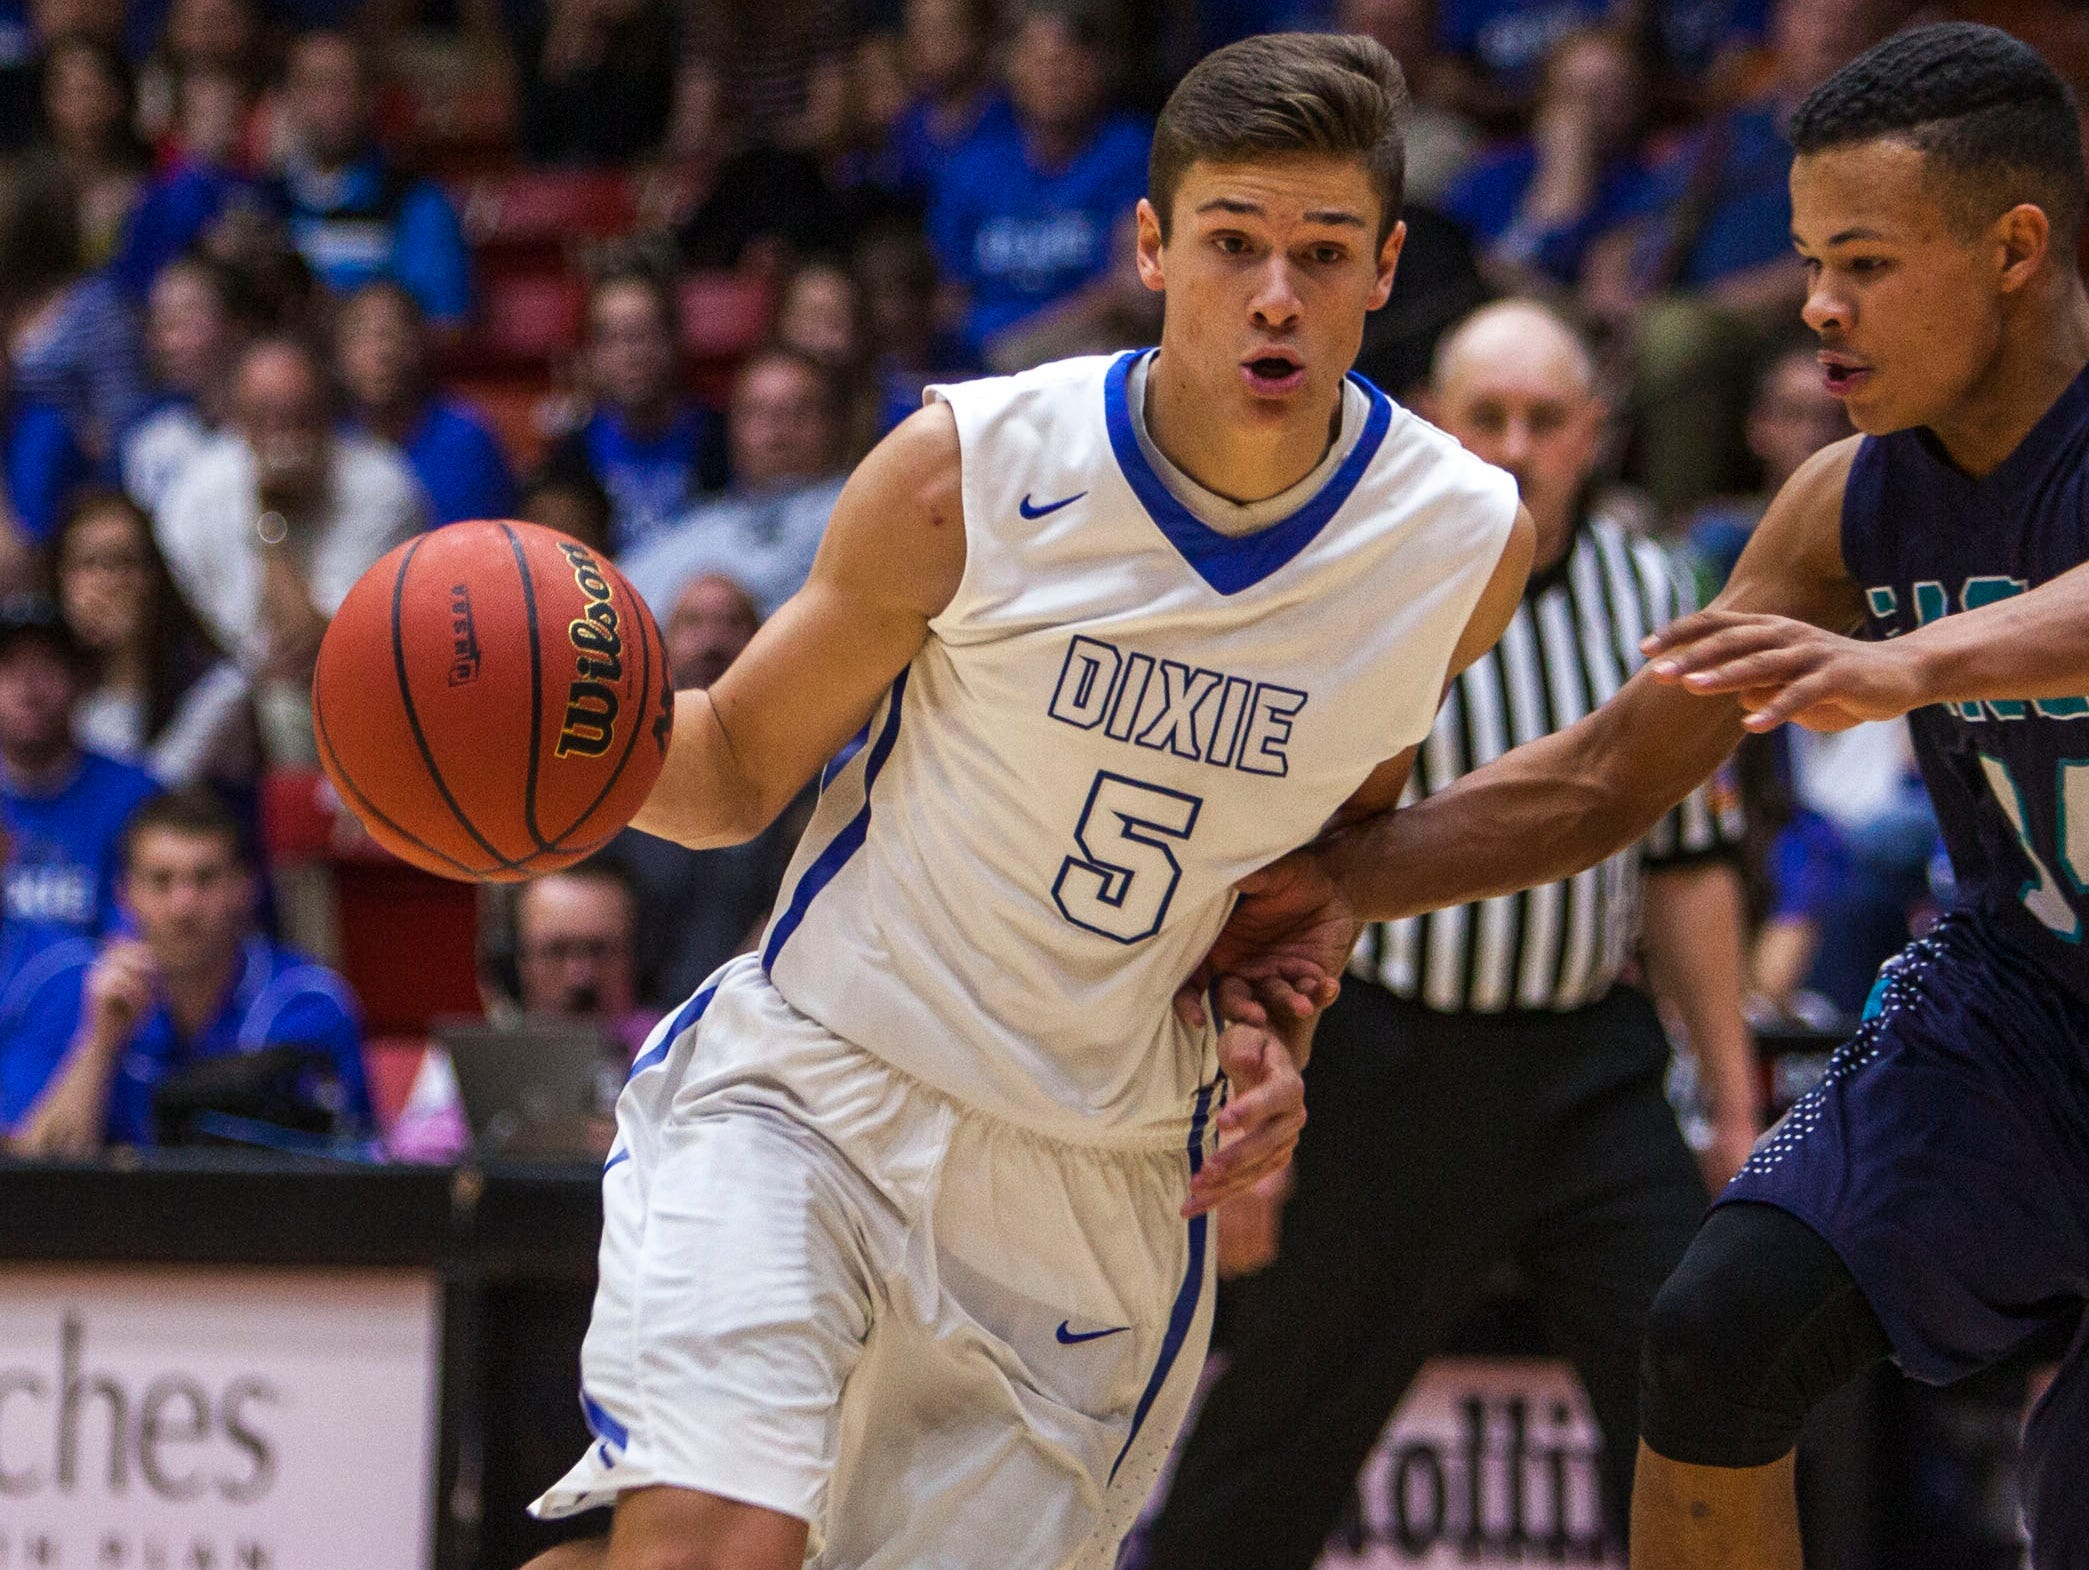 Dixie's Tyler Bennett drives the ball towards the basket during the game against Juan Diego in Saturday's 3A championship at the SUU Centrum, Feb. 27, 2016.